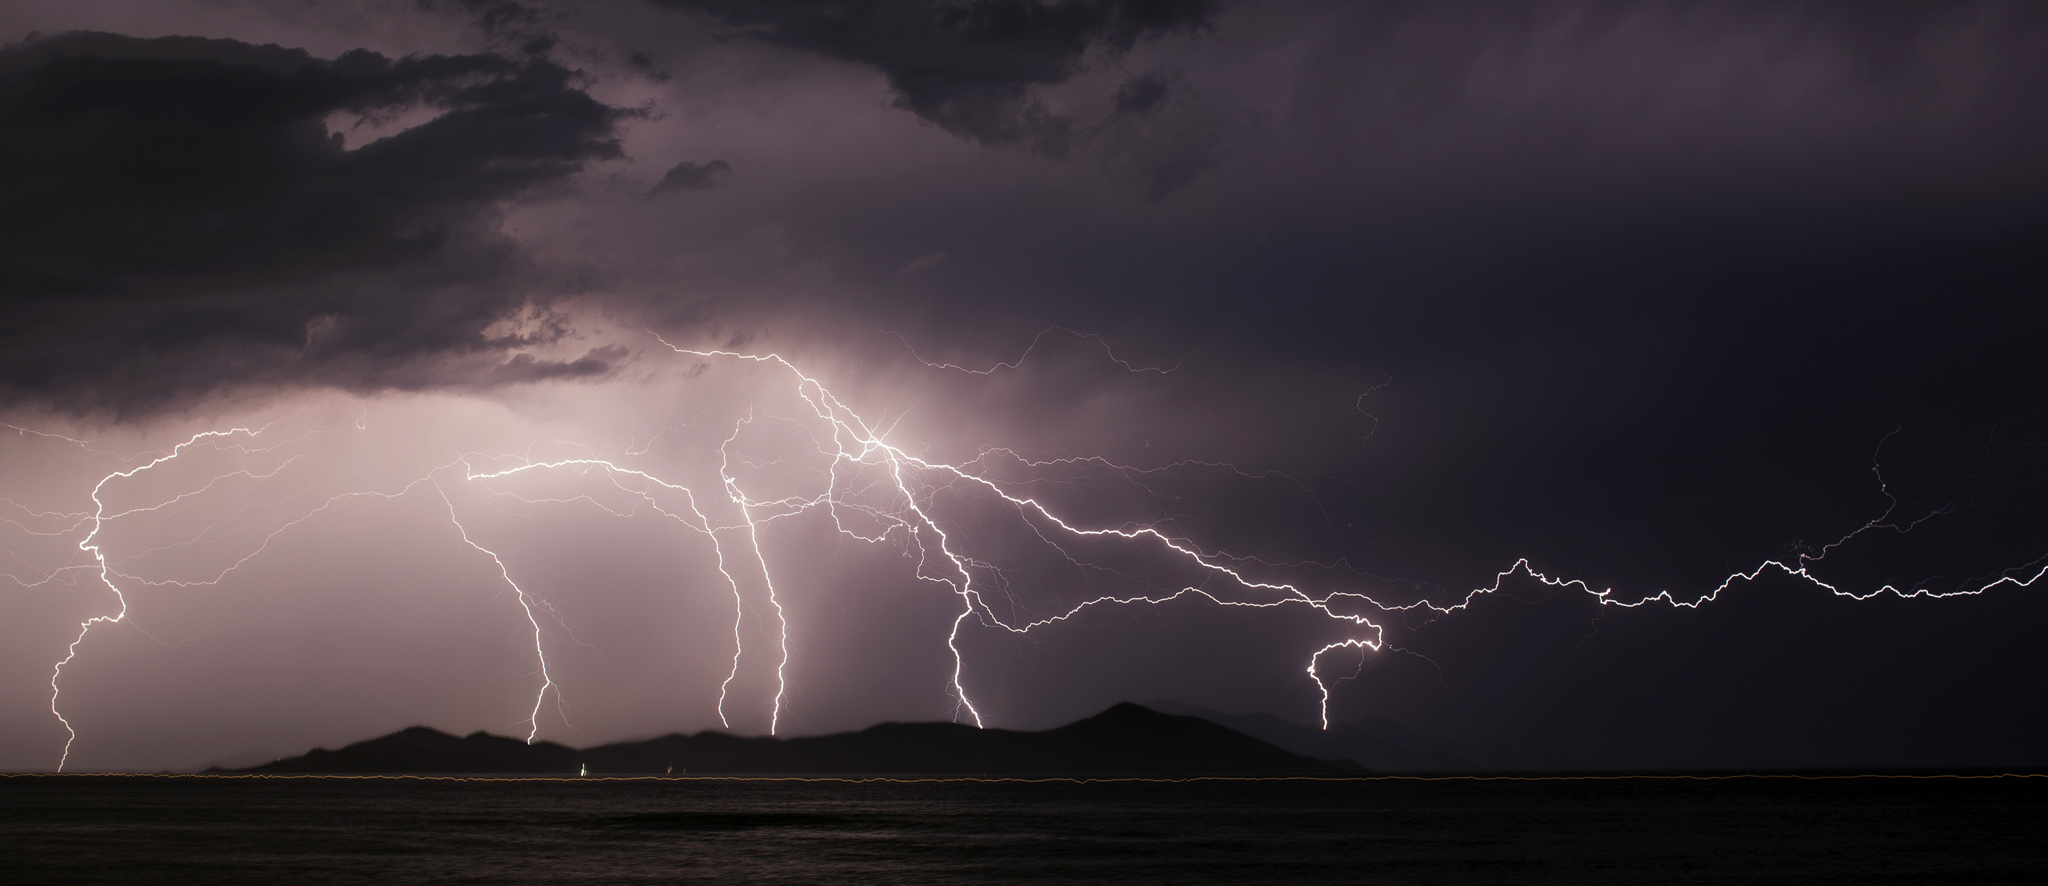 Migrants Continue To Arrive On Greek Island Of Kos...KOS, GREECE - JUNE 03:  Lightning strikes over the Greek Island of Pserimos on June 03, 2015 in Kos, Greece. Migrants are continuing to arrive on the Greek Island of Kos from Turkey who's shoreline lies approximately 5 Km away. Around 30,000 migrants have entered Greece so far in 2015, with the country calling for more help from its European Union counterparts.  (Photo by Dan Kitwood/Getty Images)